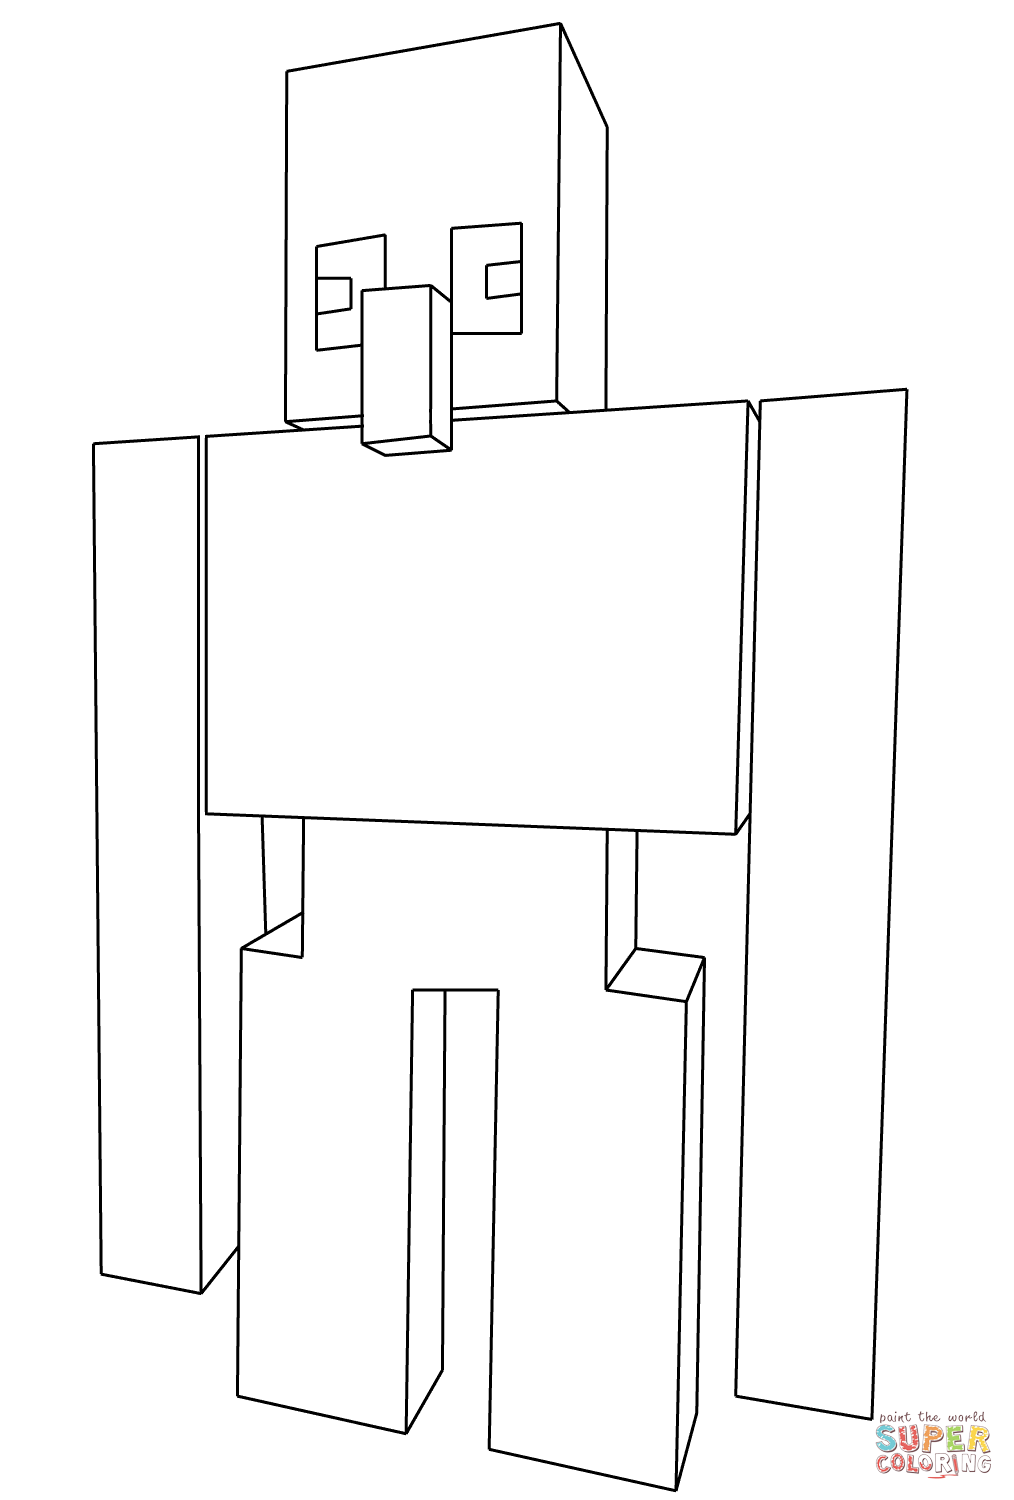 minecraft iron golem coloring pages minecraft iron golem coloring pages at getdrawings free iron coloring minecraft pages golem